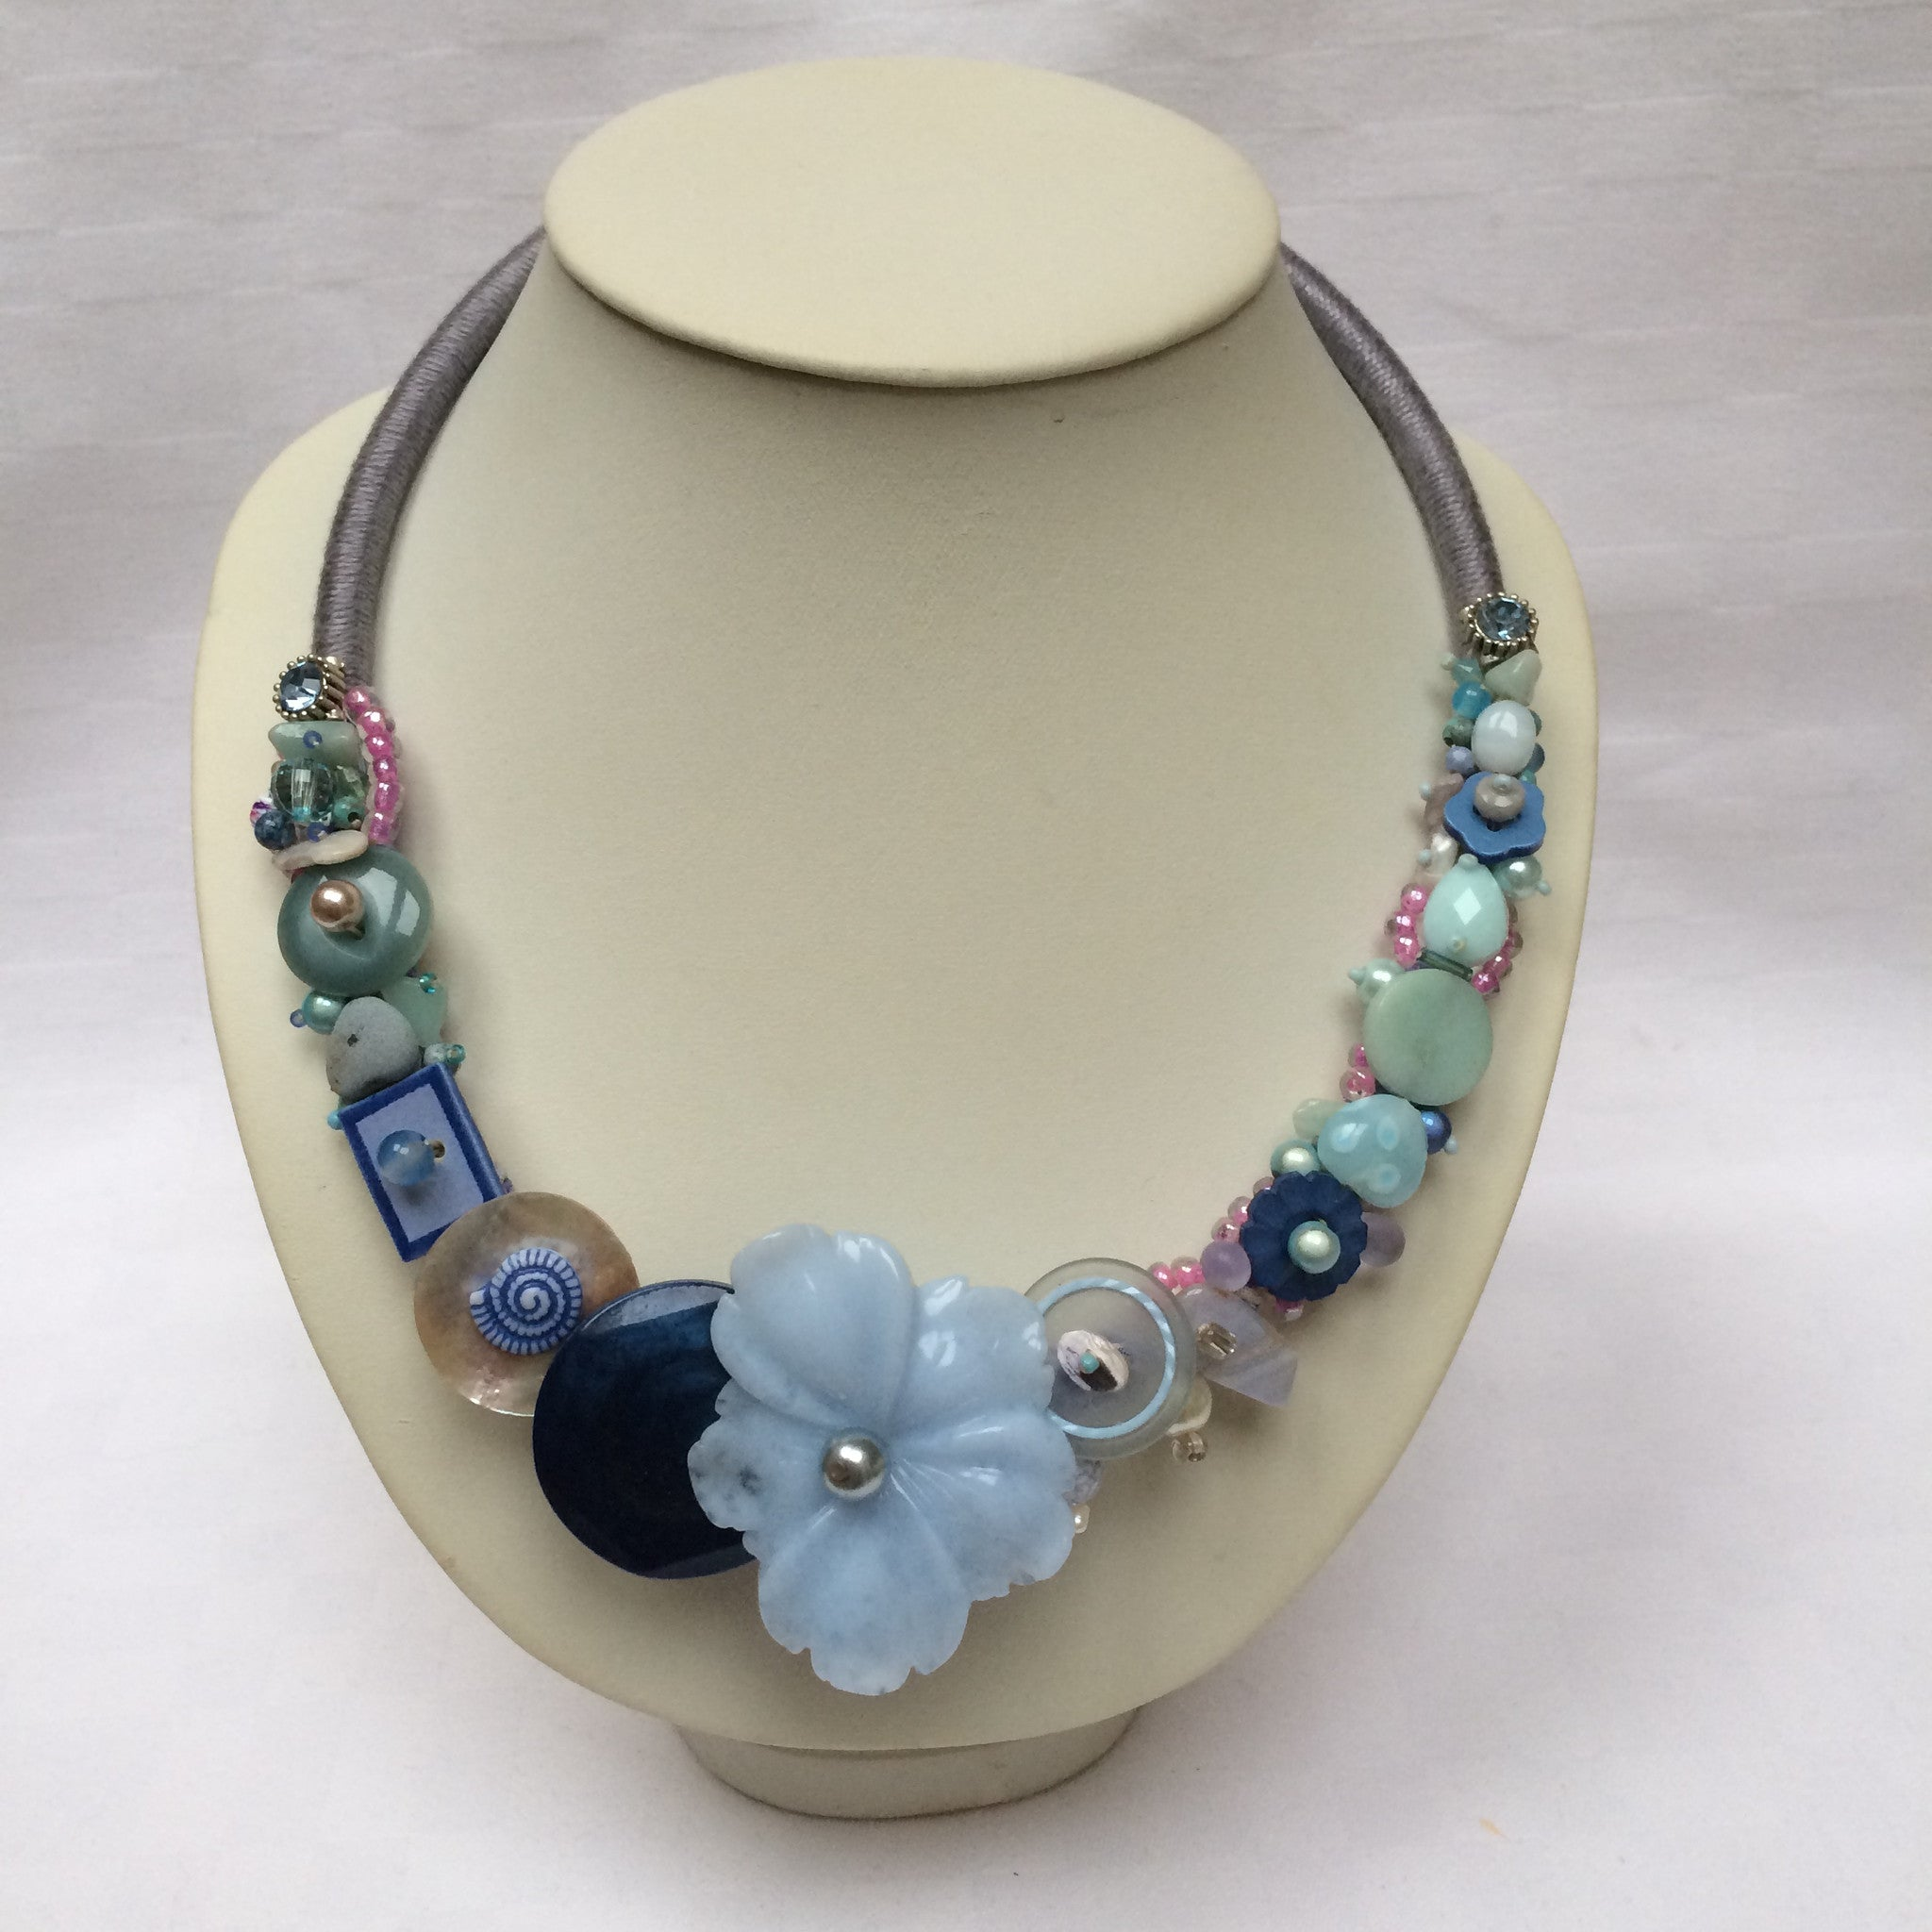 Pastel Blue Collar necklace